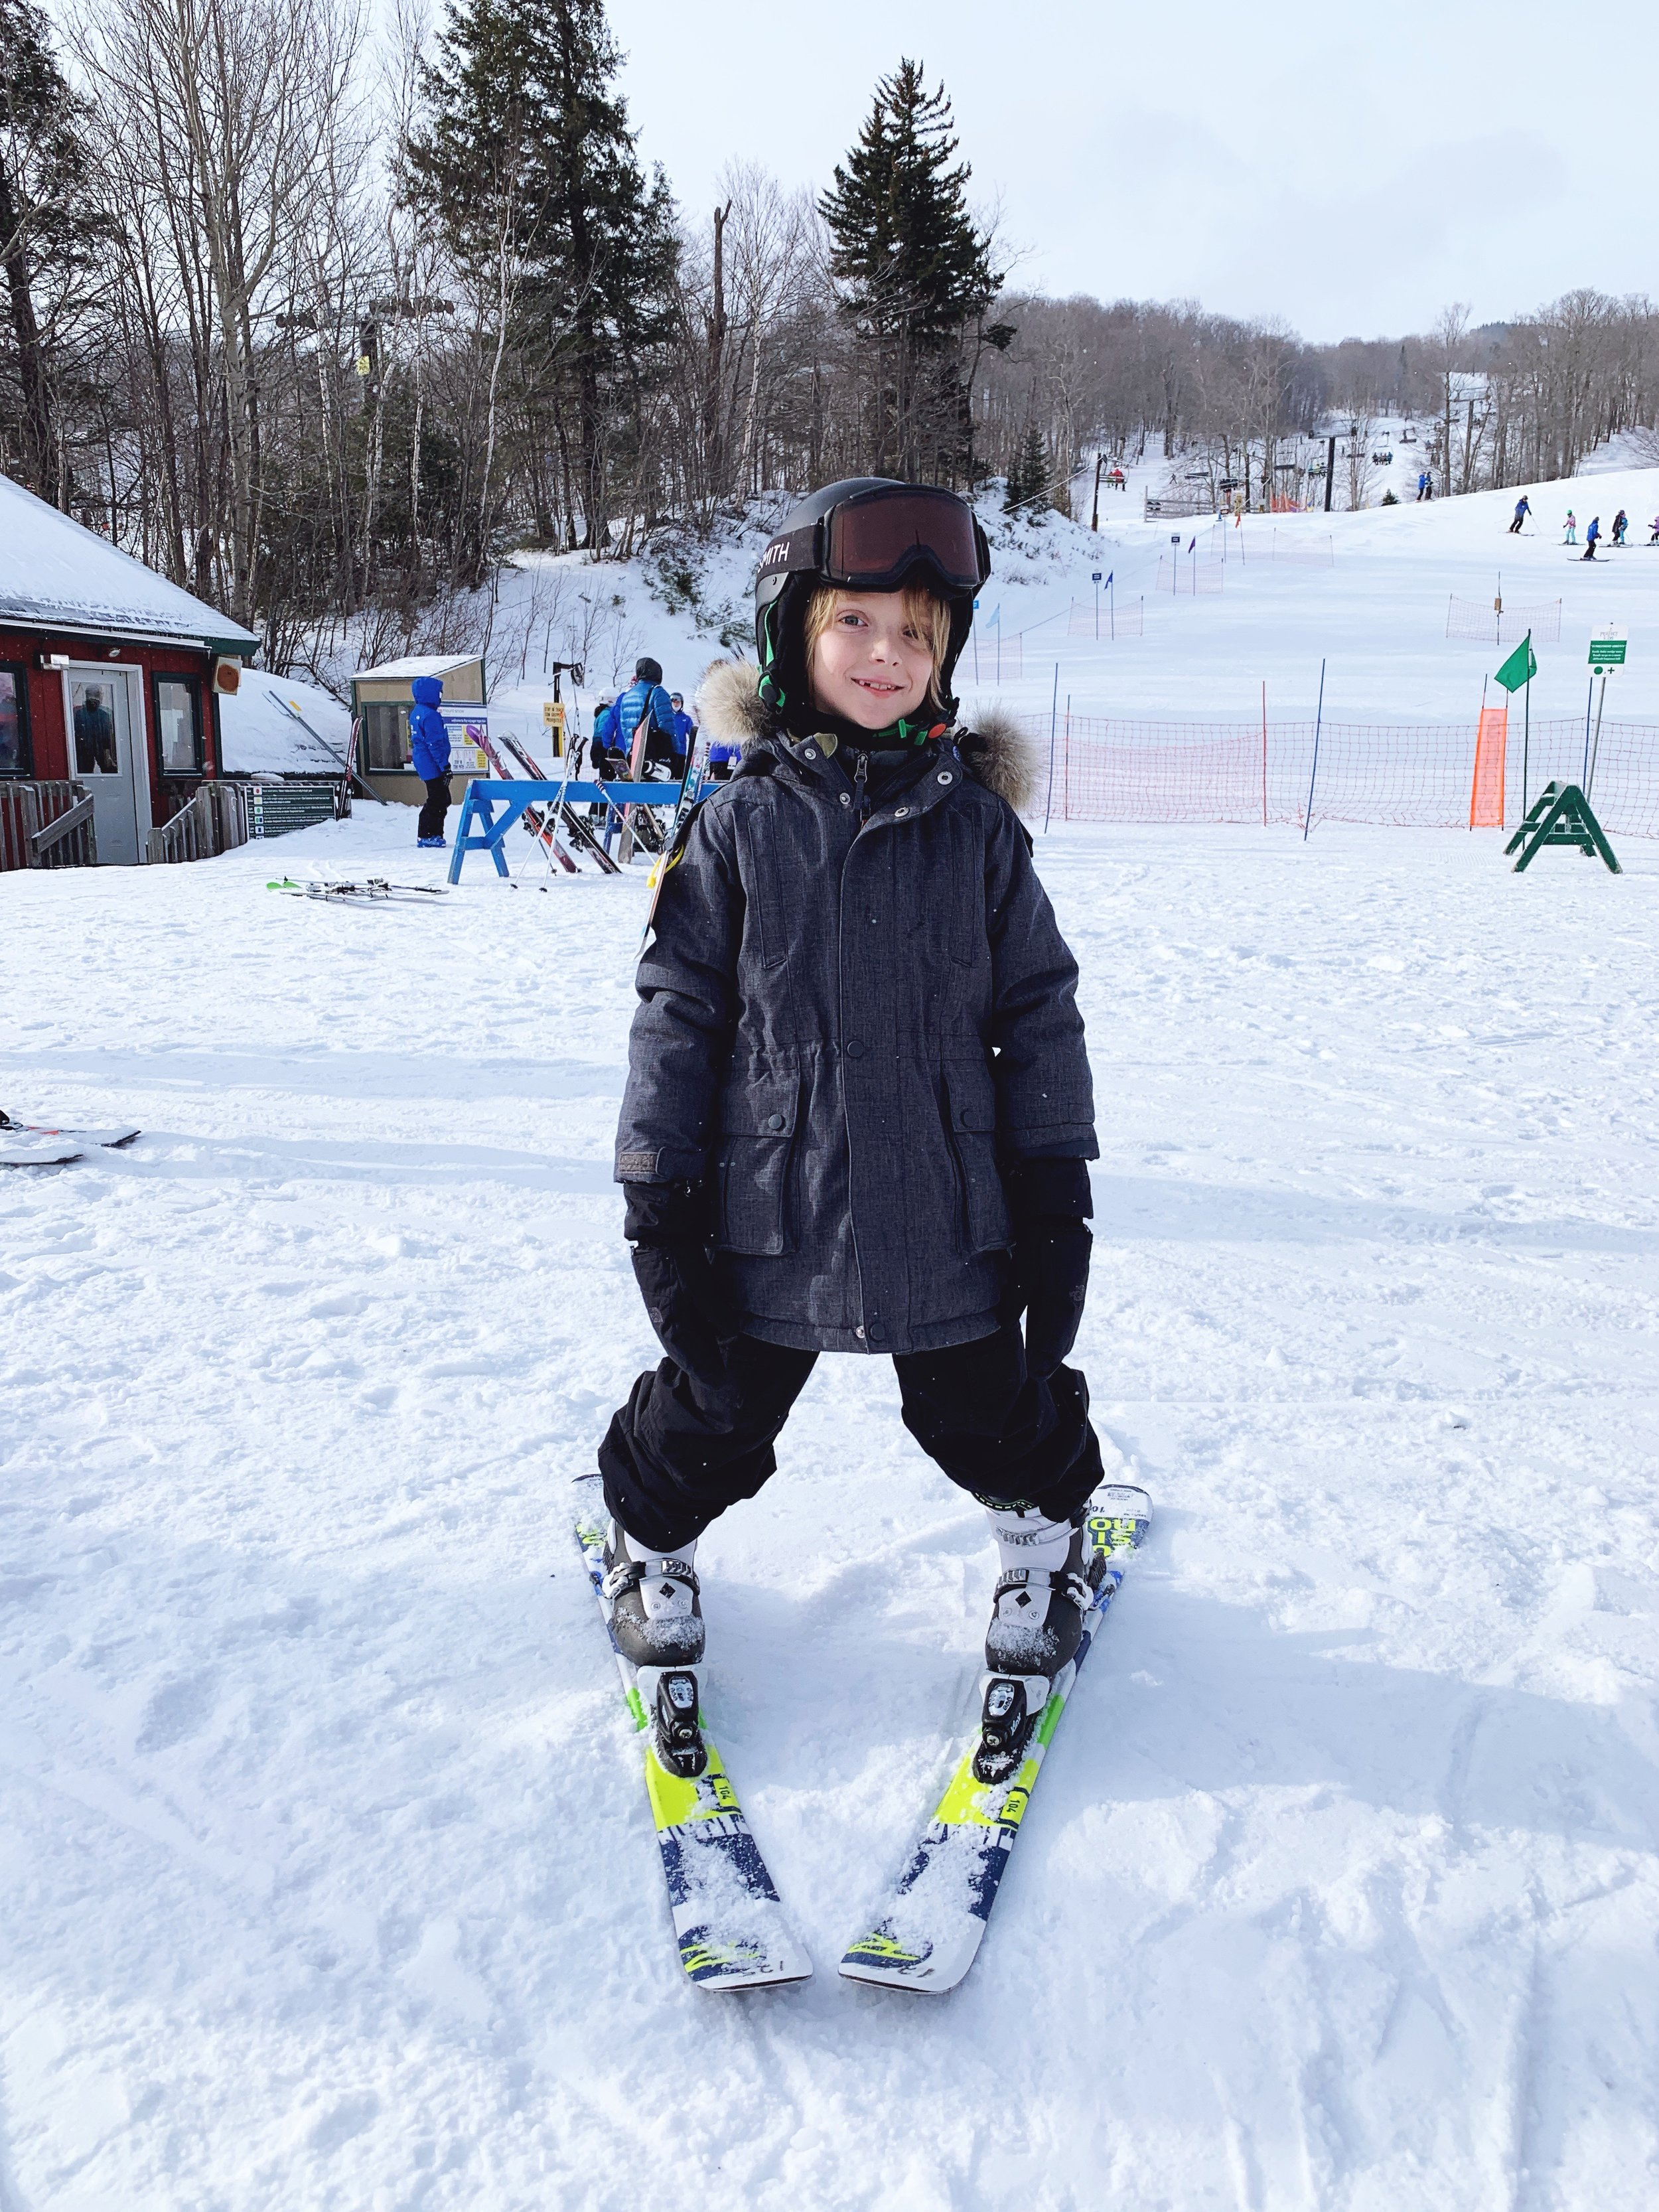 Hudson getting ready to hit the slopes.